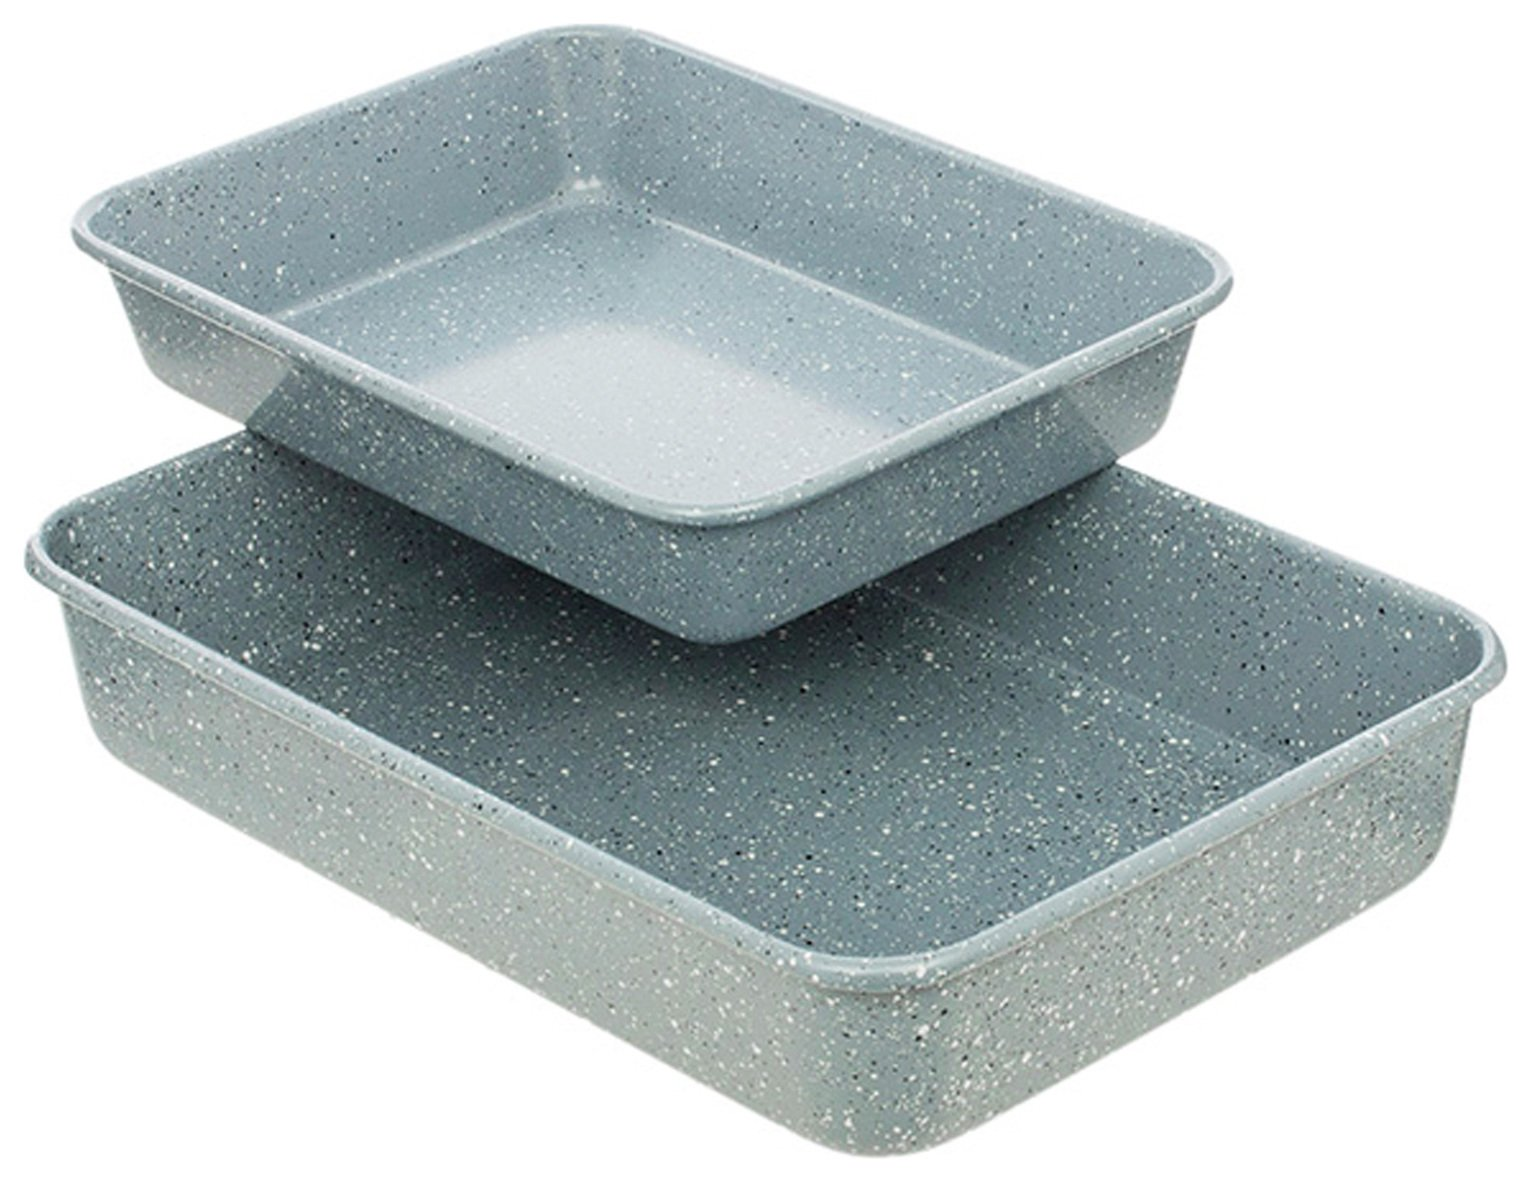 Sainsbury's Home 2 Piece Stone Effect Roaster Set